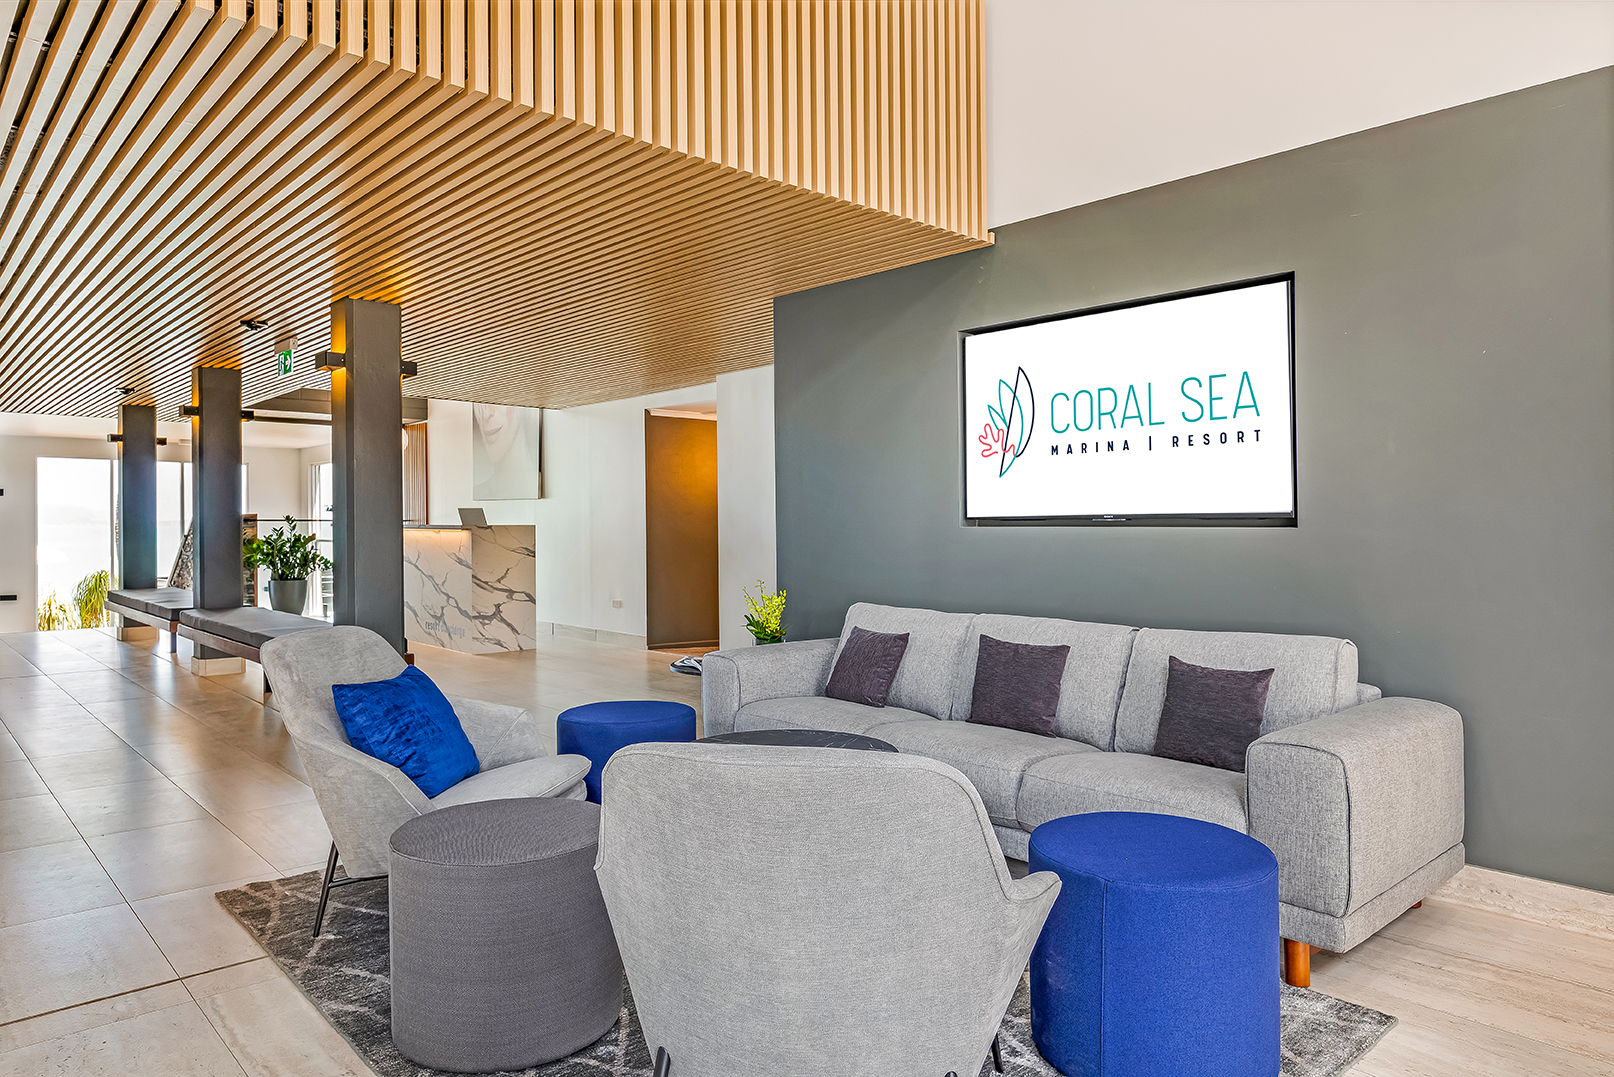 Coral Sea Resort commercial marketing photography in the Whitsundays by Brooke Miles